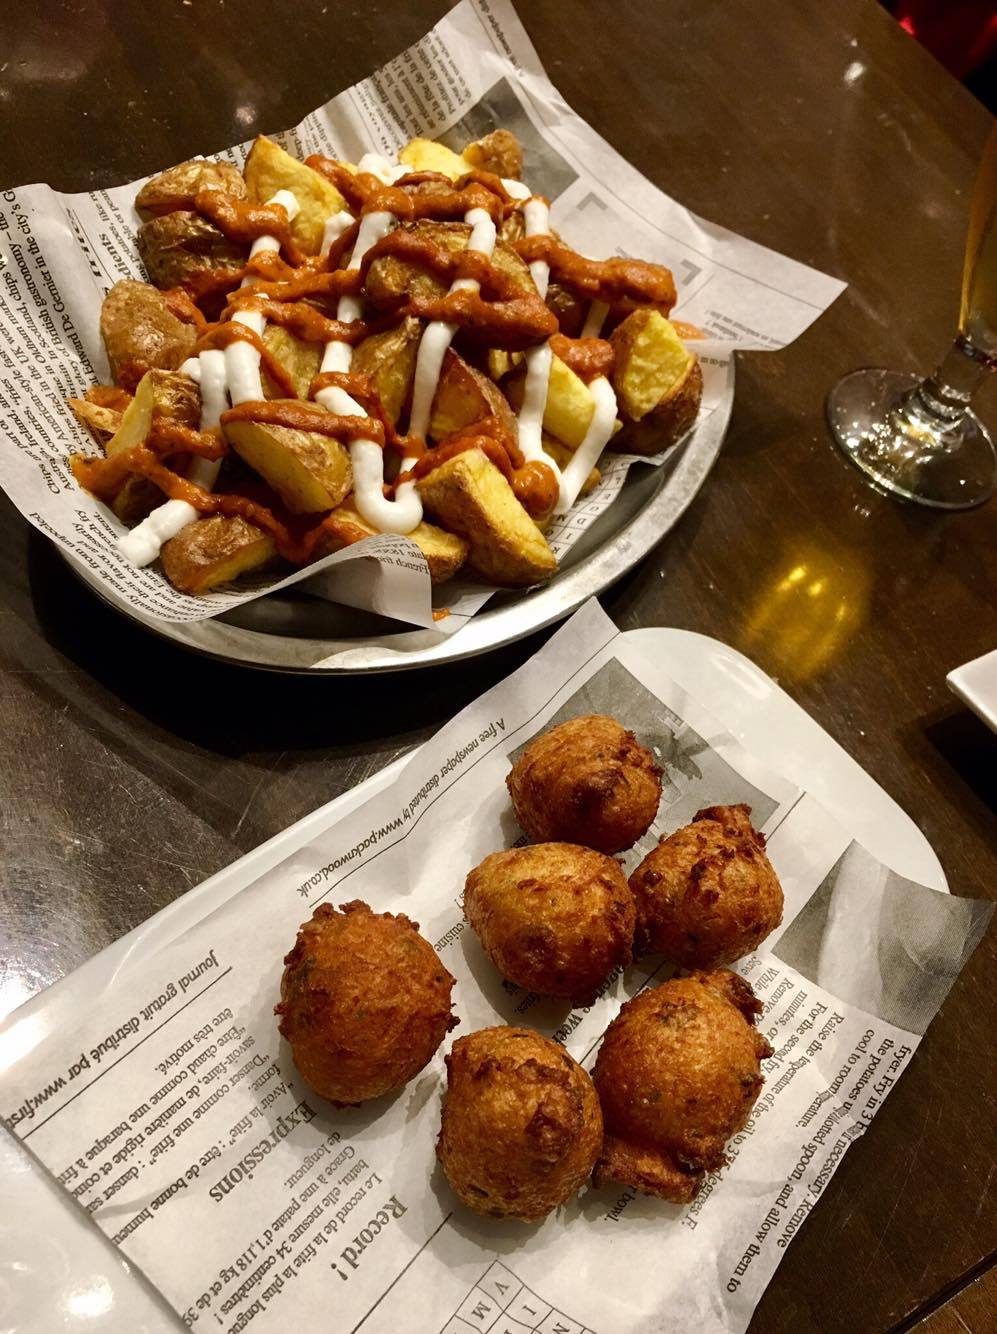 Top left: Patatas bravas, a staple tapas served across Spain. Fried potato wedges with aioli and spicy tomato sauce. Bottom right: another dish of fried croquetas, with a different filling.